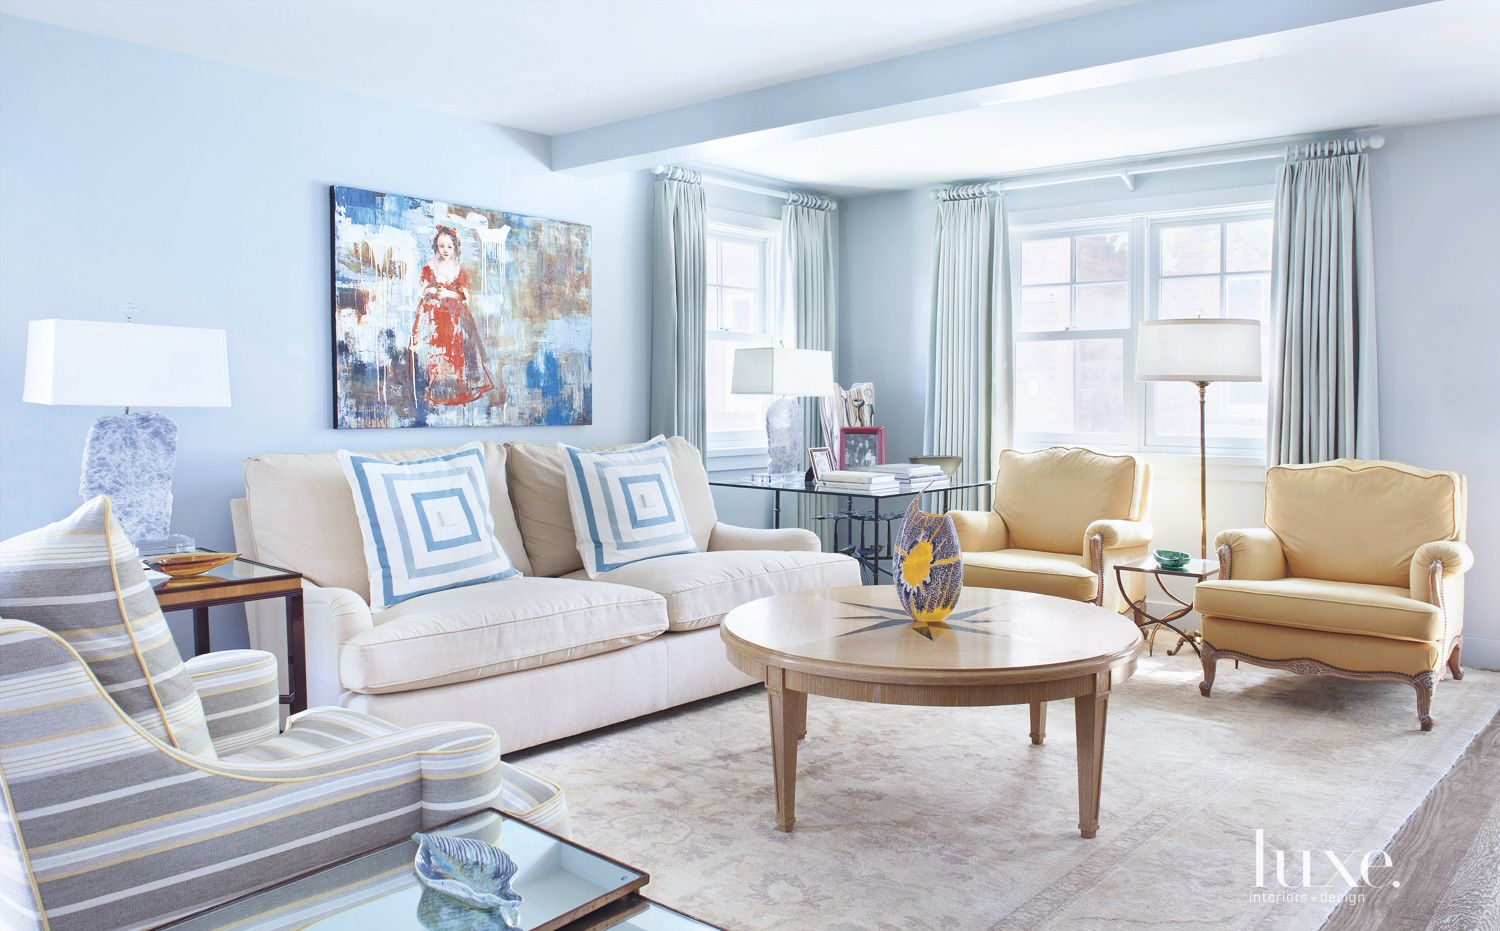 Traditional Blue Living Room with Eclectic Decor